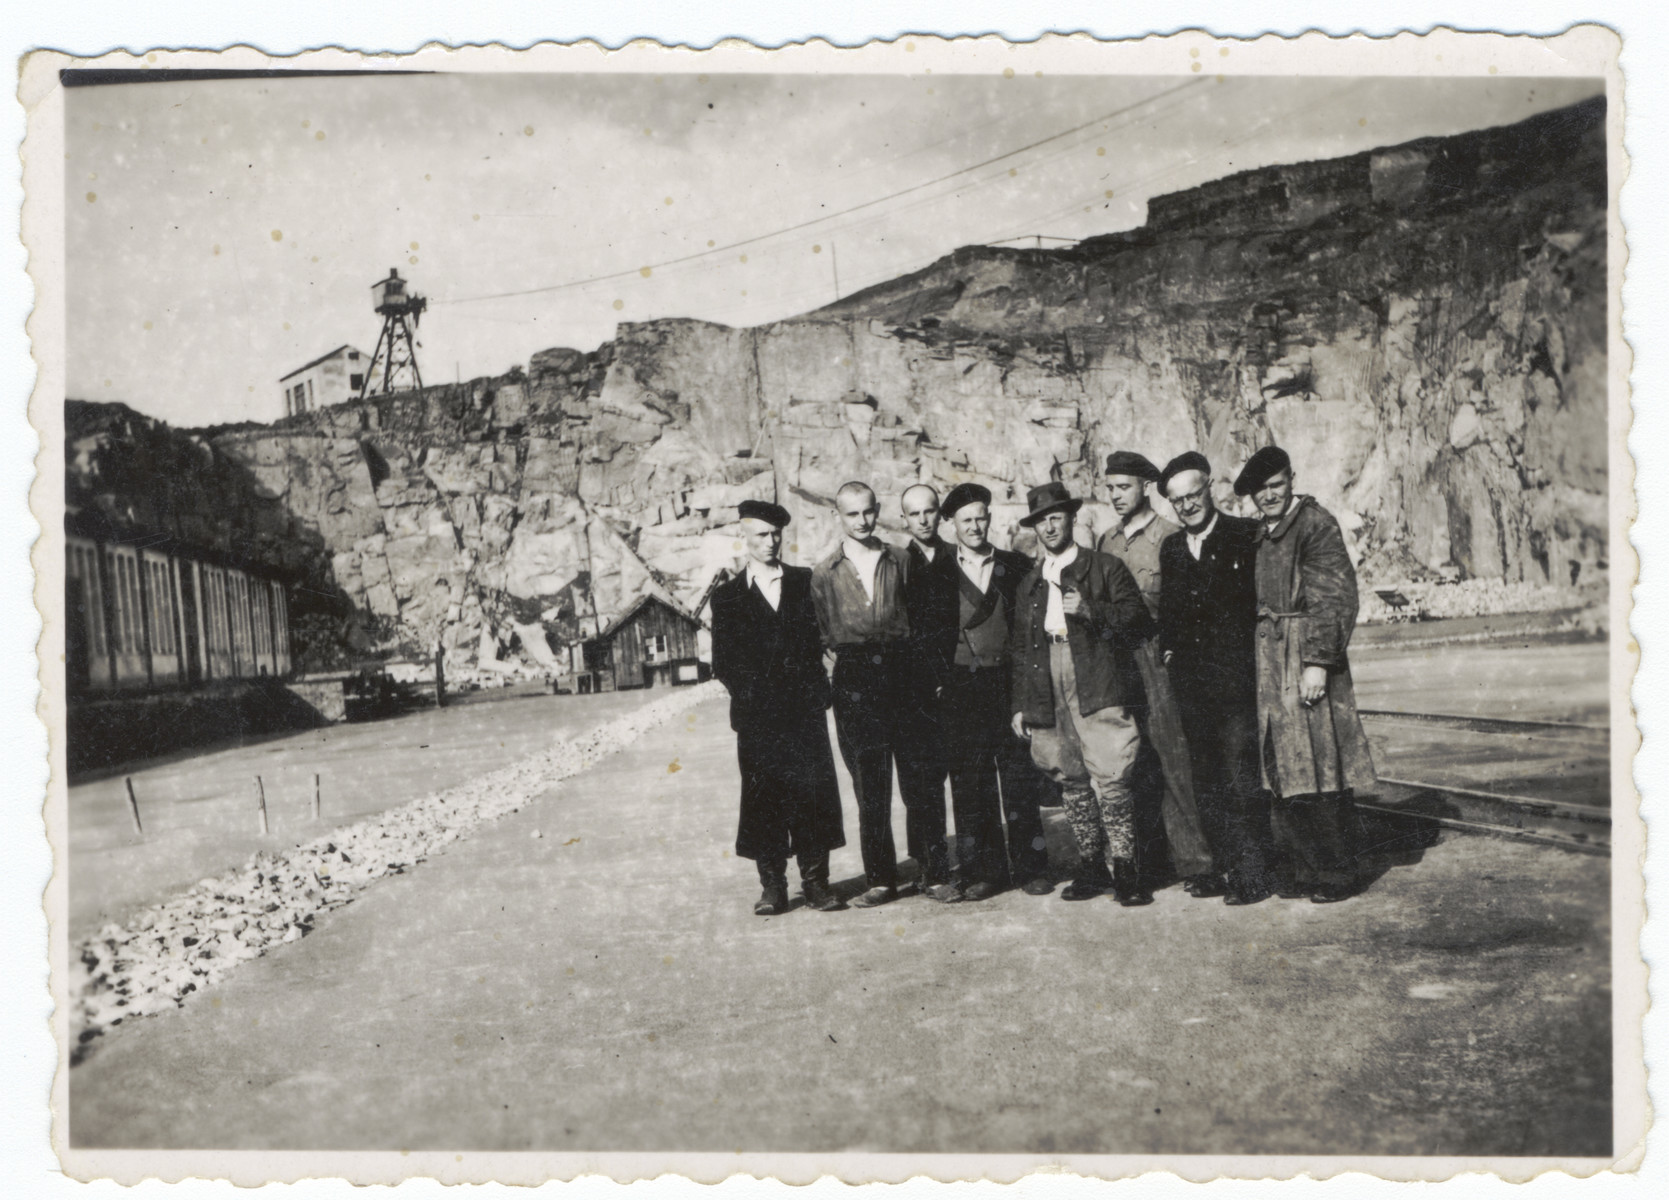 Survivors of the Gusen concentration camp pose in front of the stone quarry.